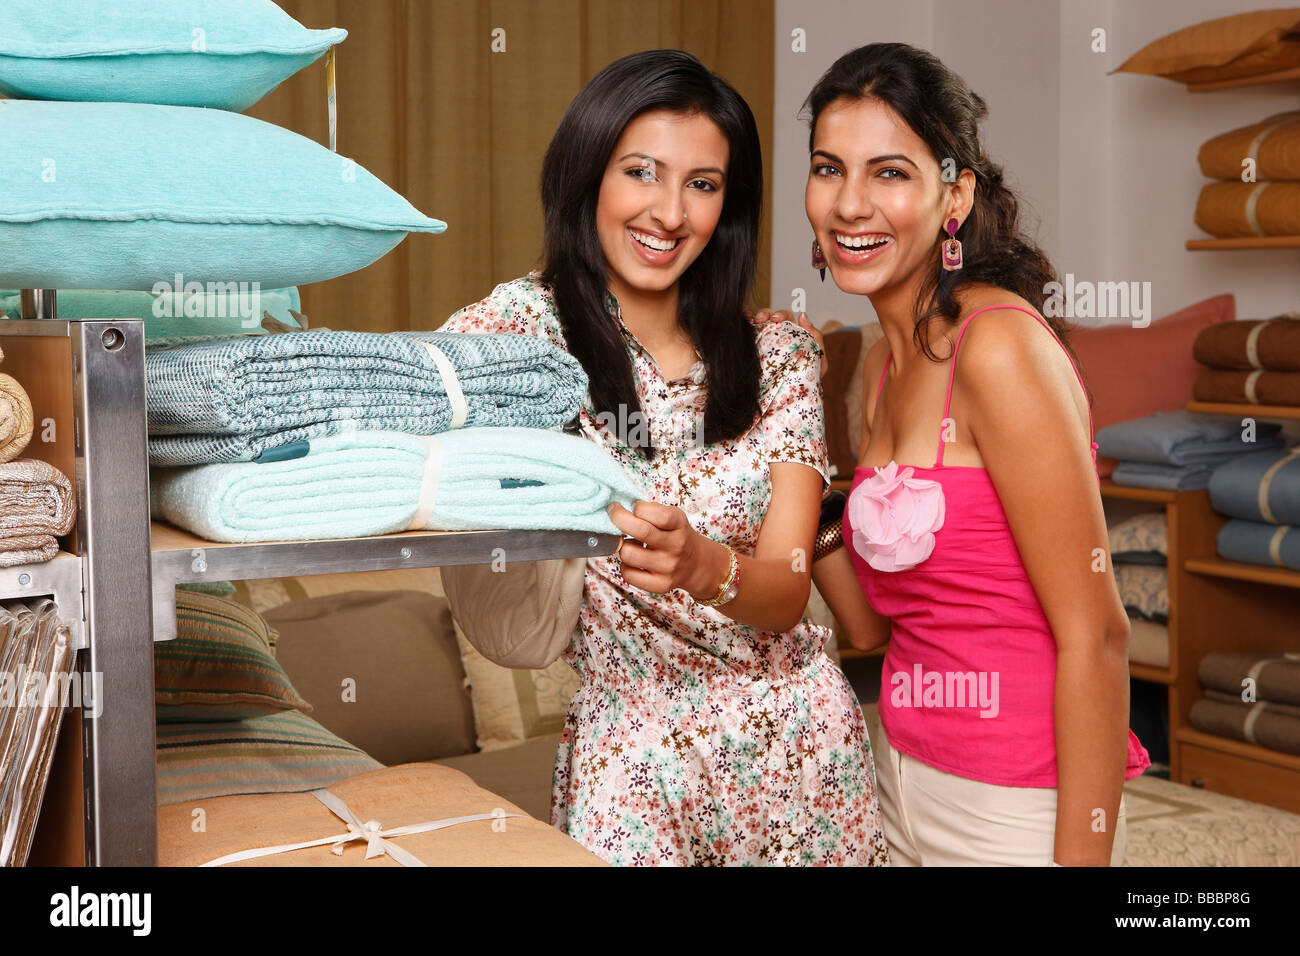 two women shopping for household items - Stock Image